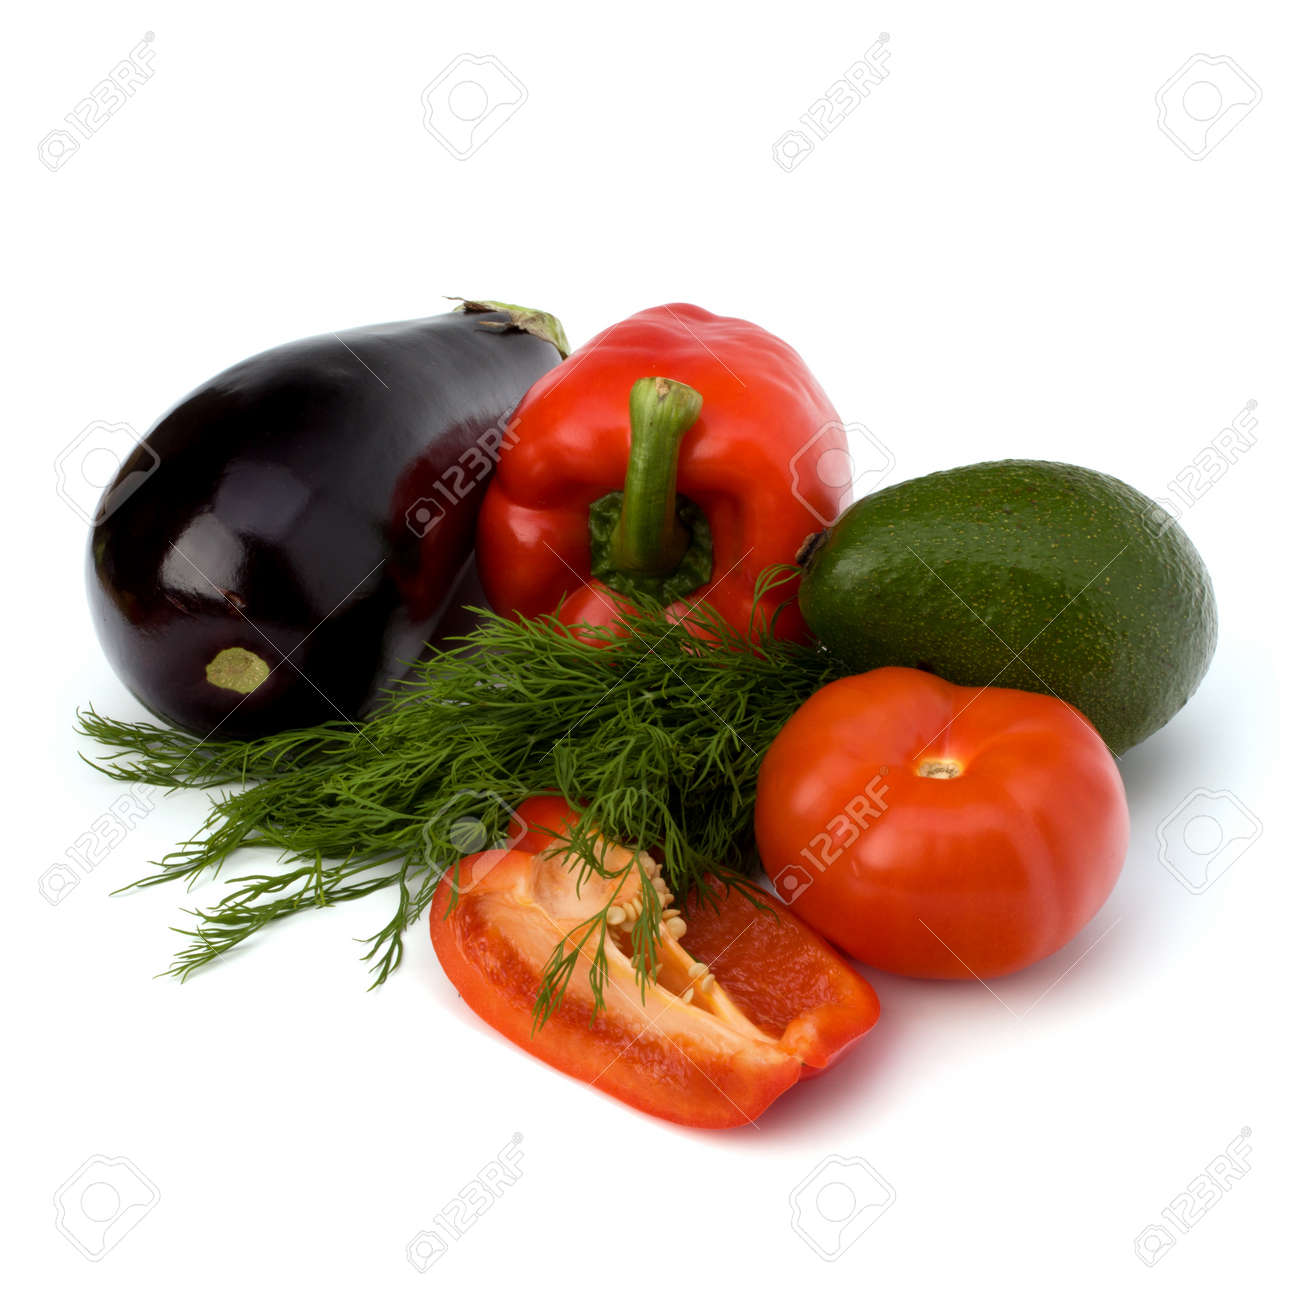 vegetables isolated on white background close up Stock Photo - 8527554